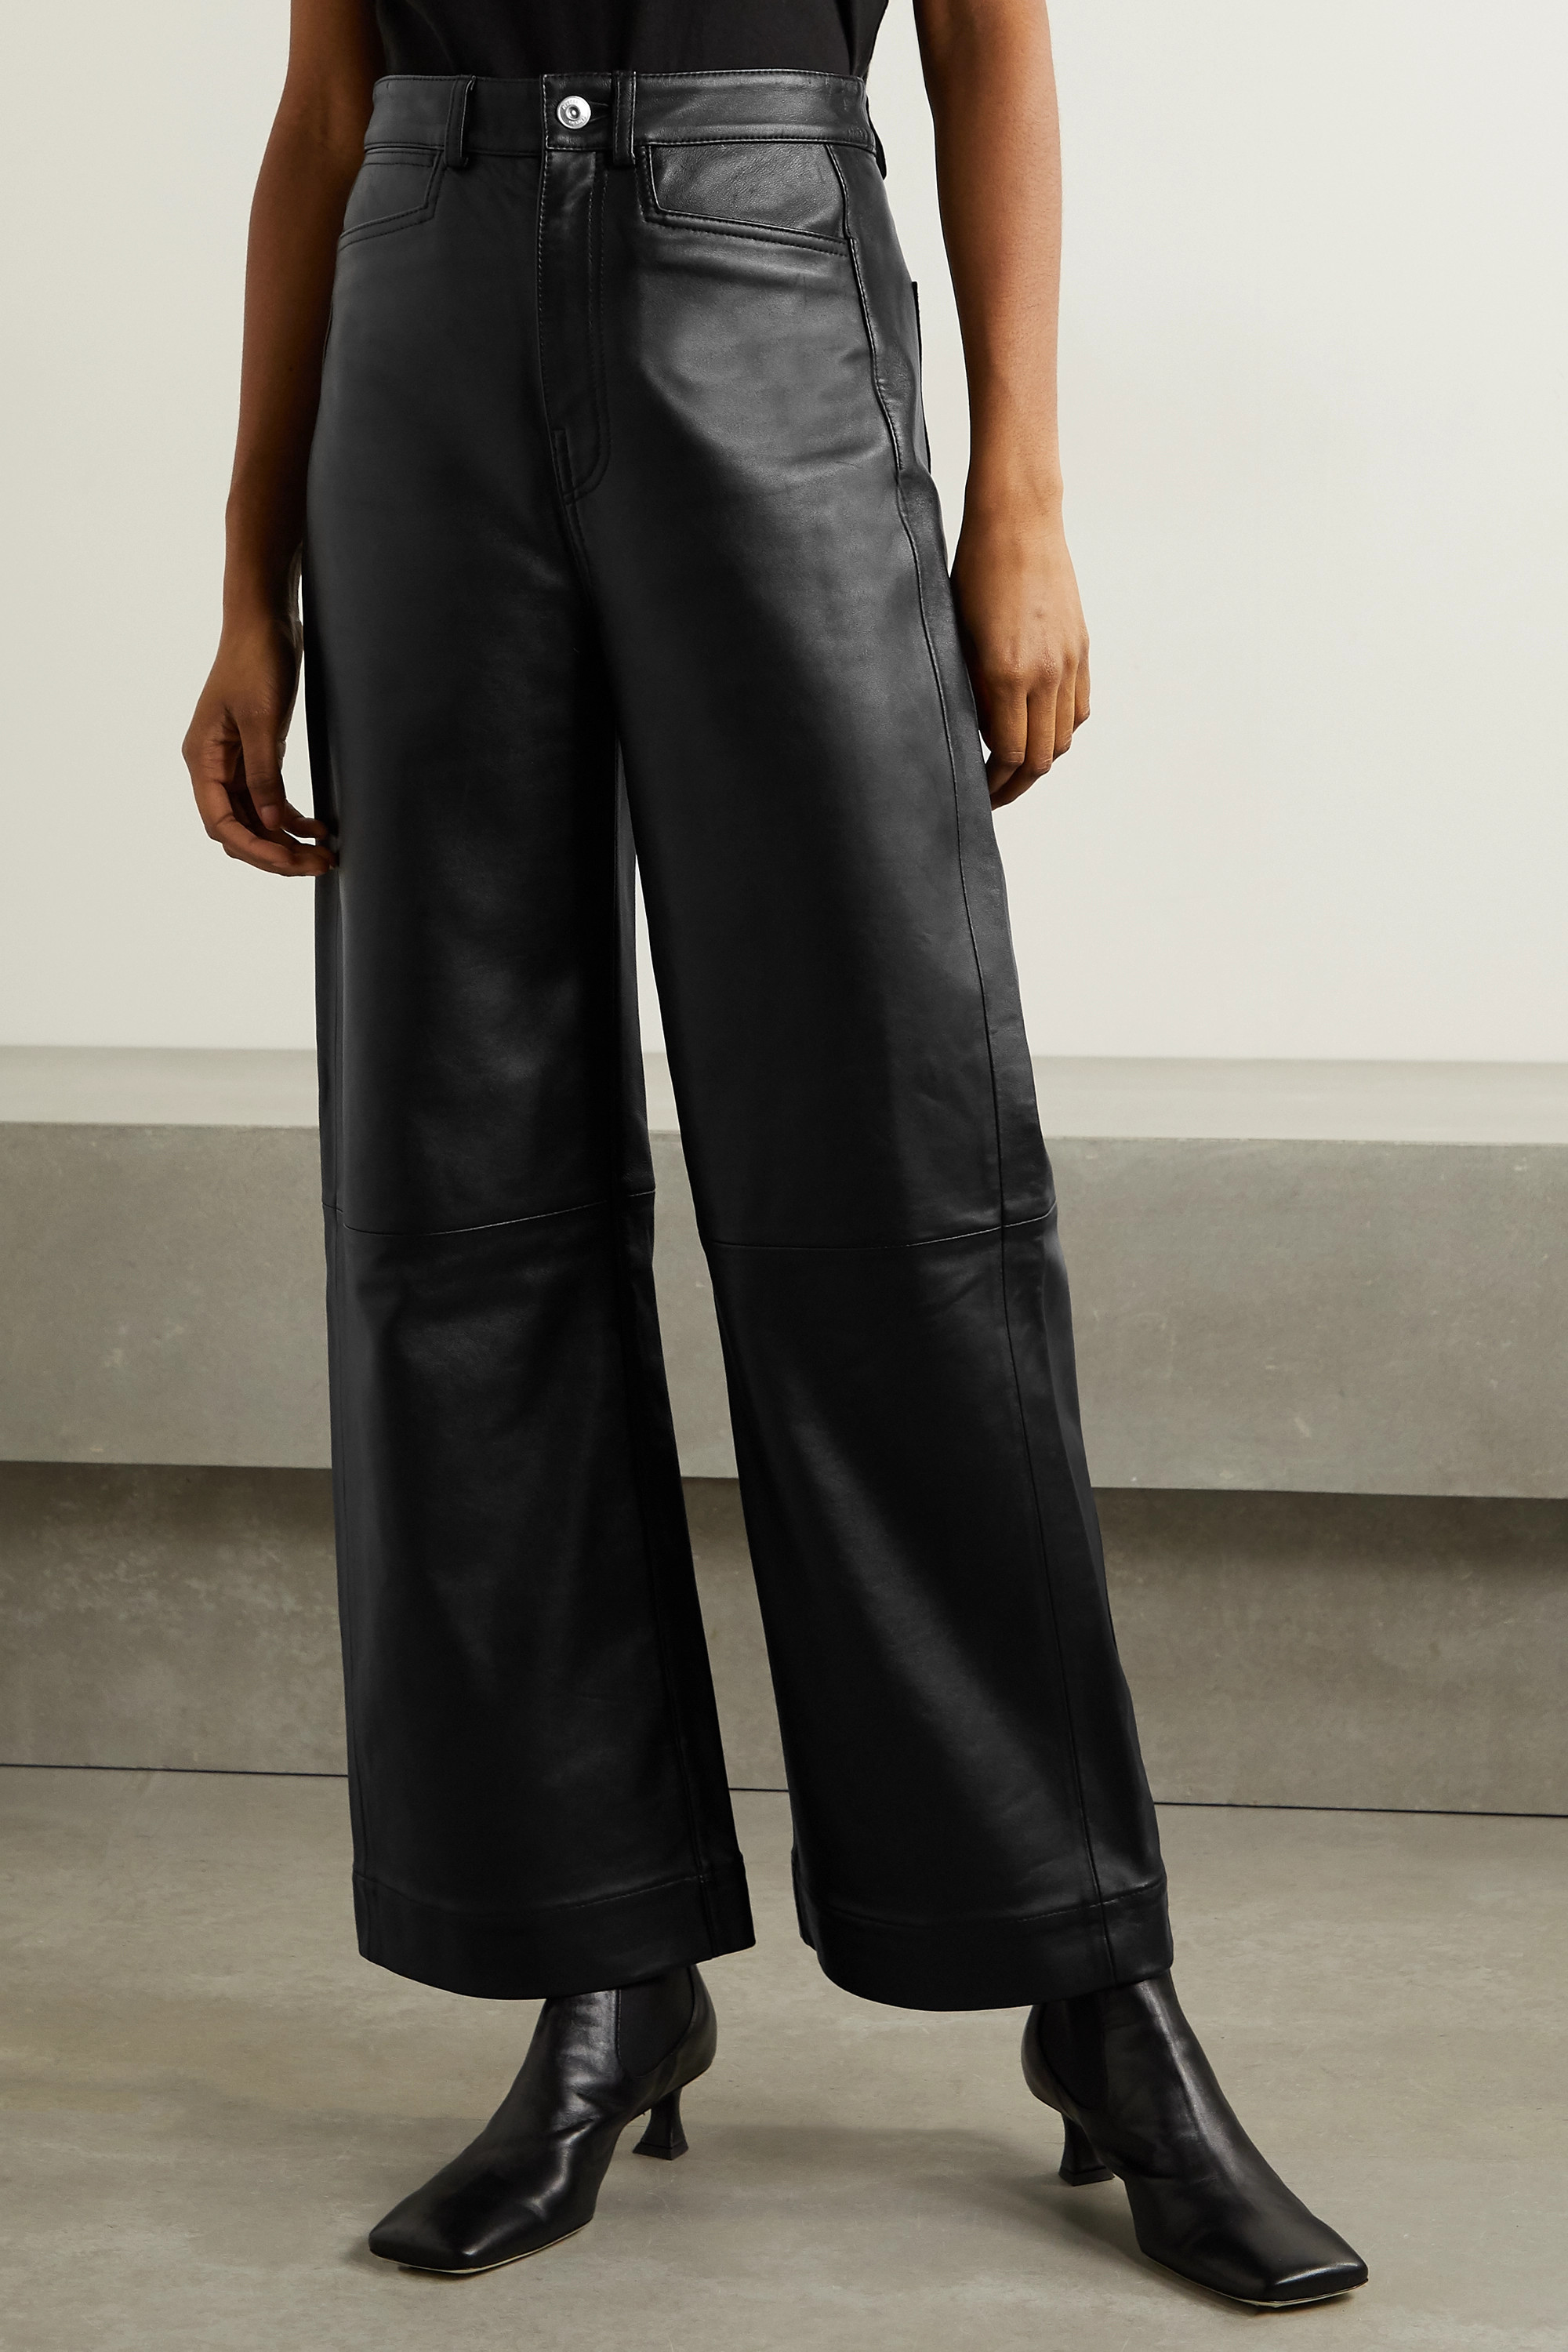 Proenza Schouler White Label Cropped leather wide-leg pants